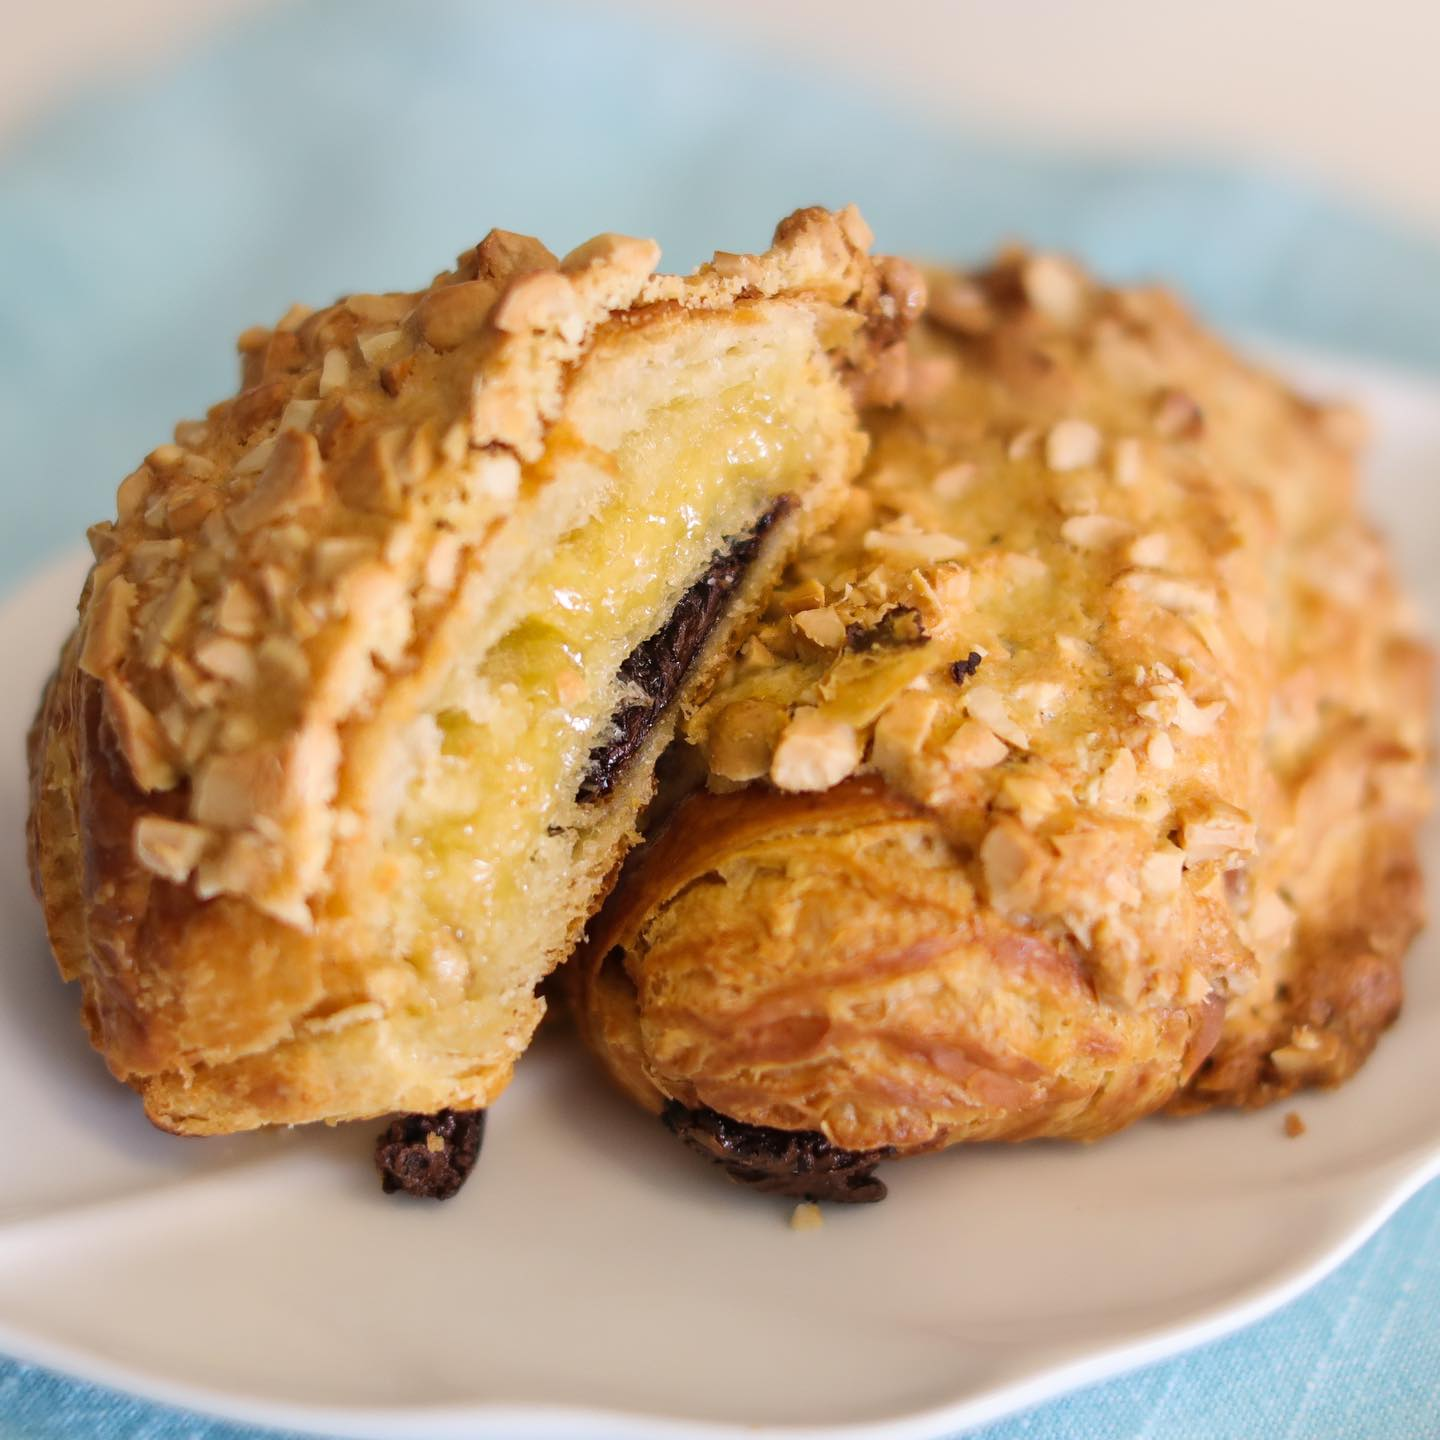 a flaky pastry topped with crushed almonds and cut in half